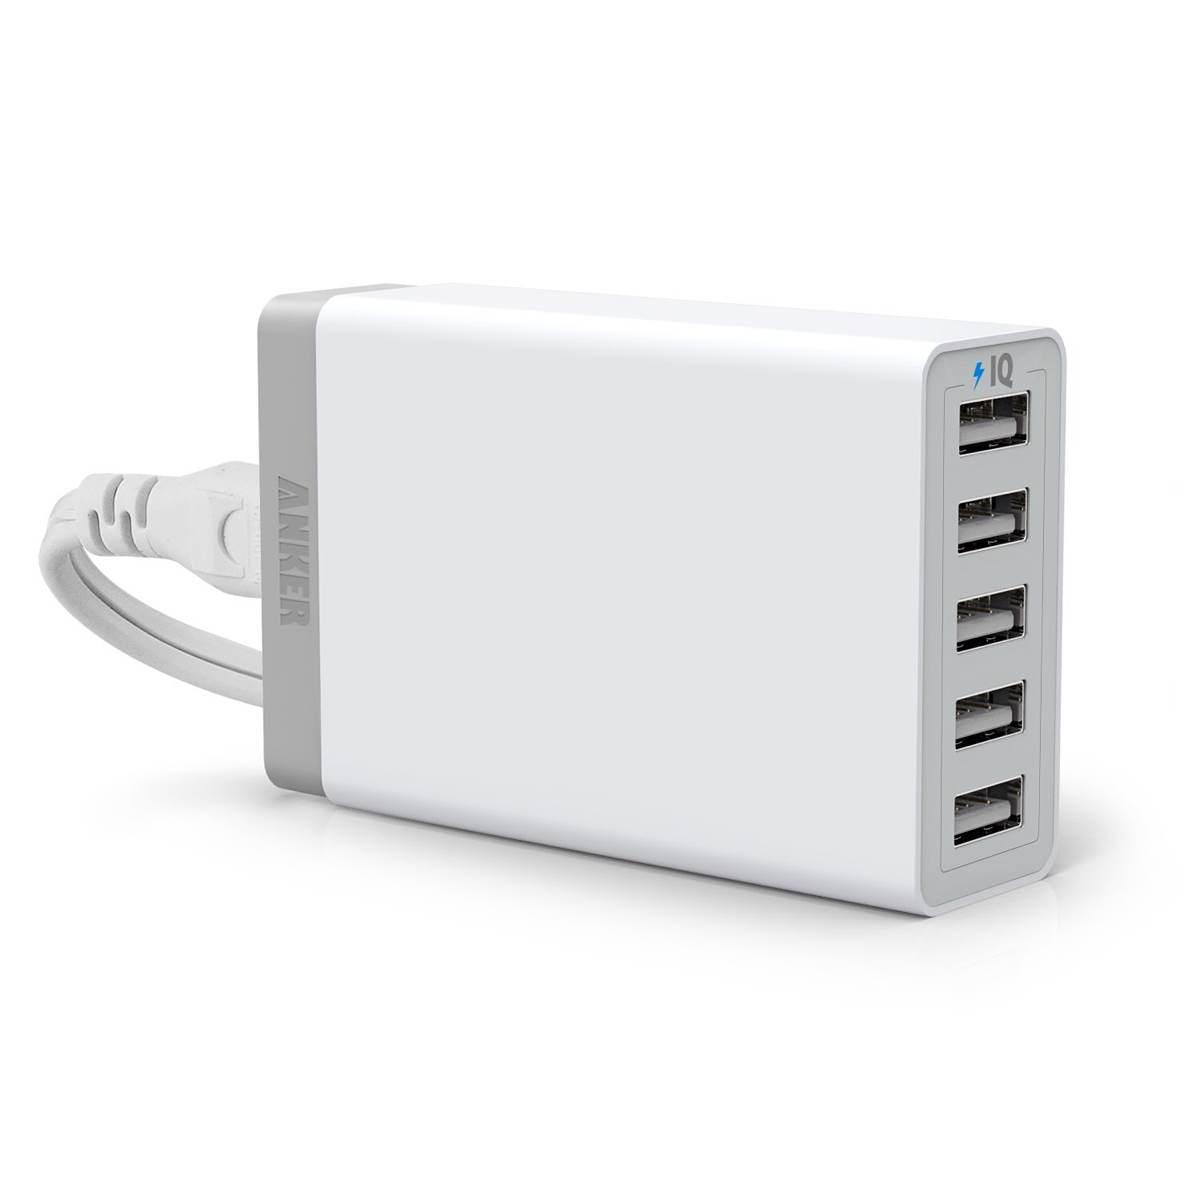 Anker 40W 5-Port USB Charger